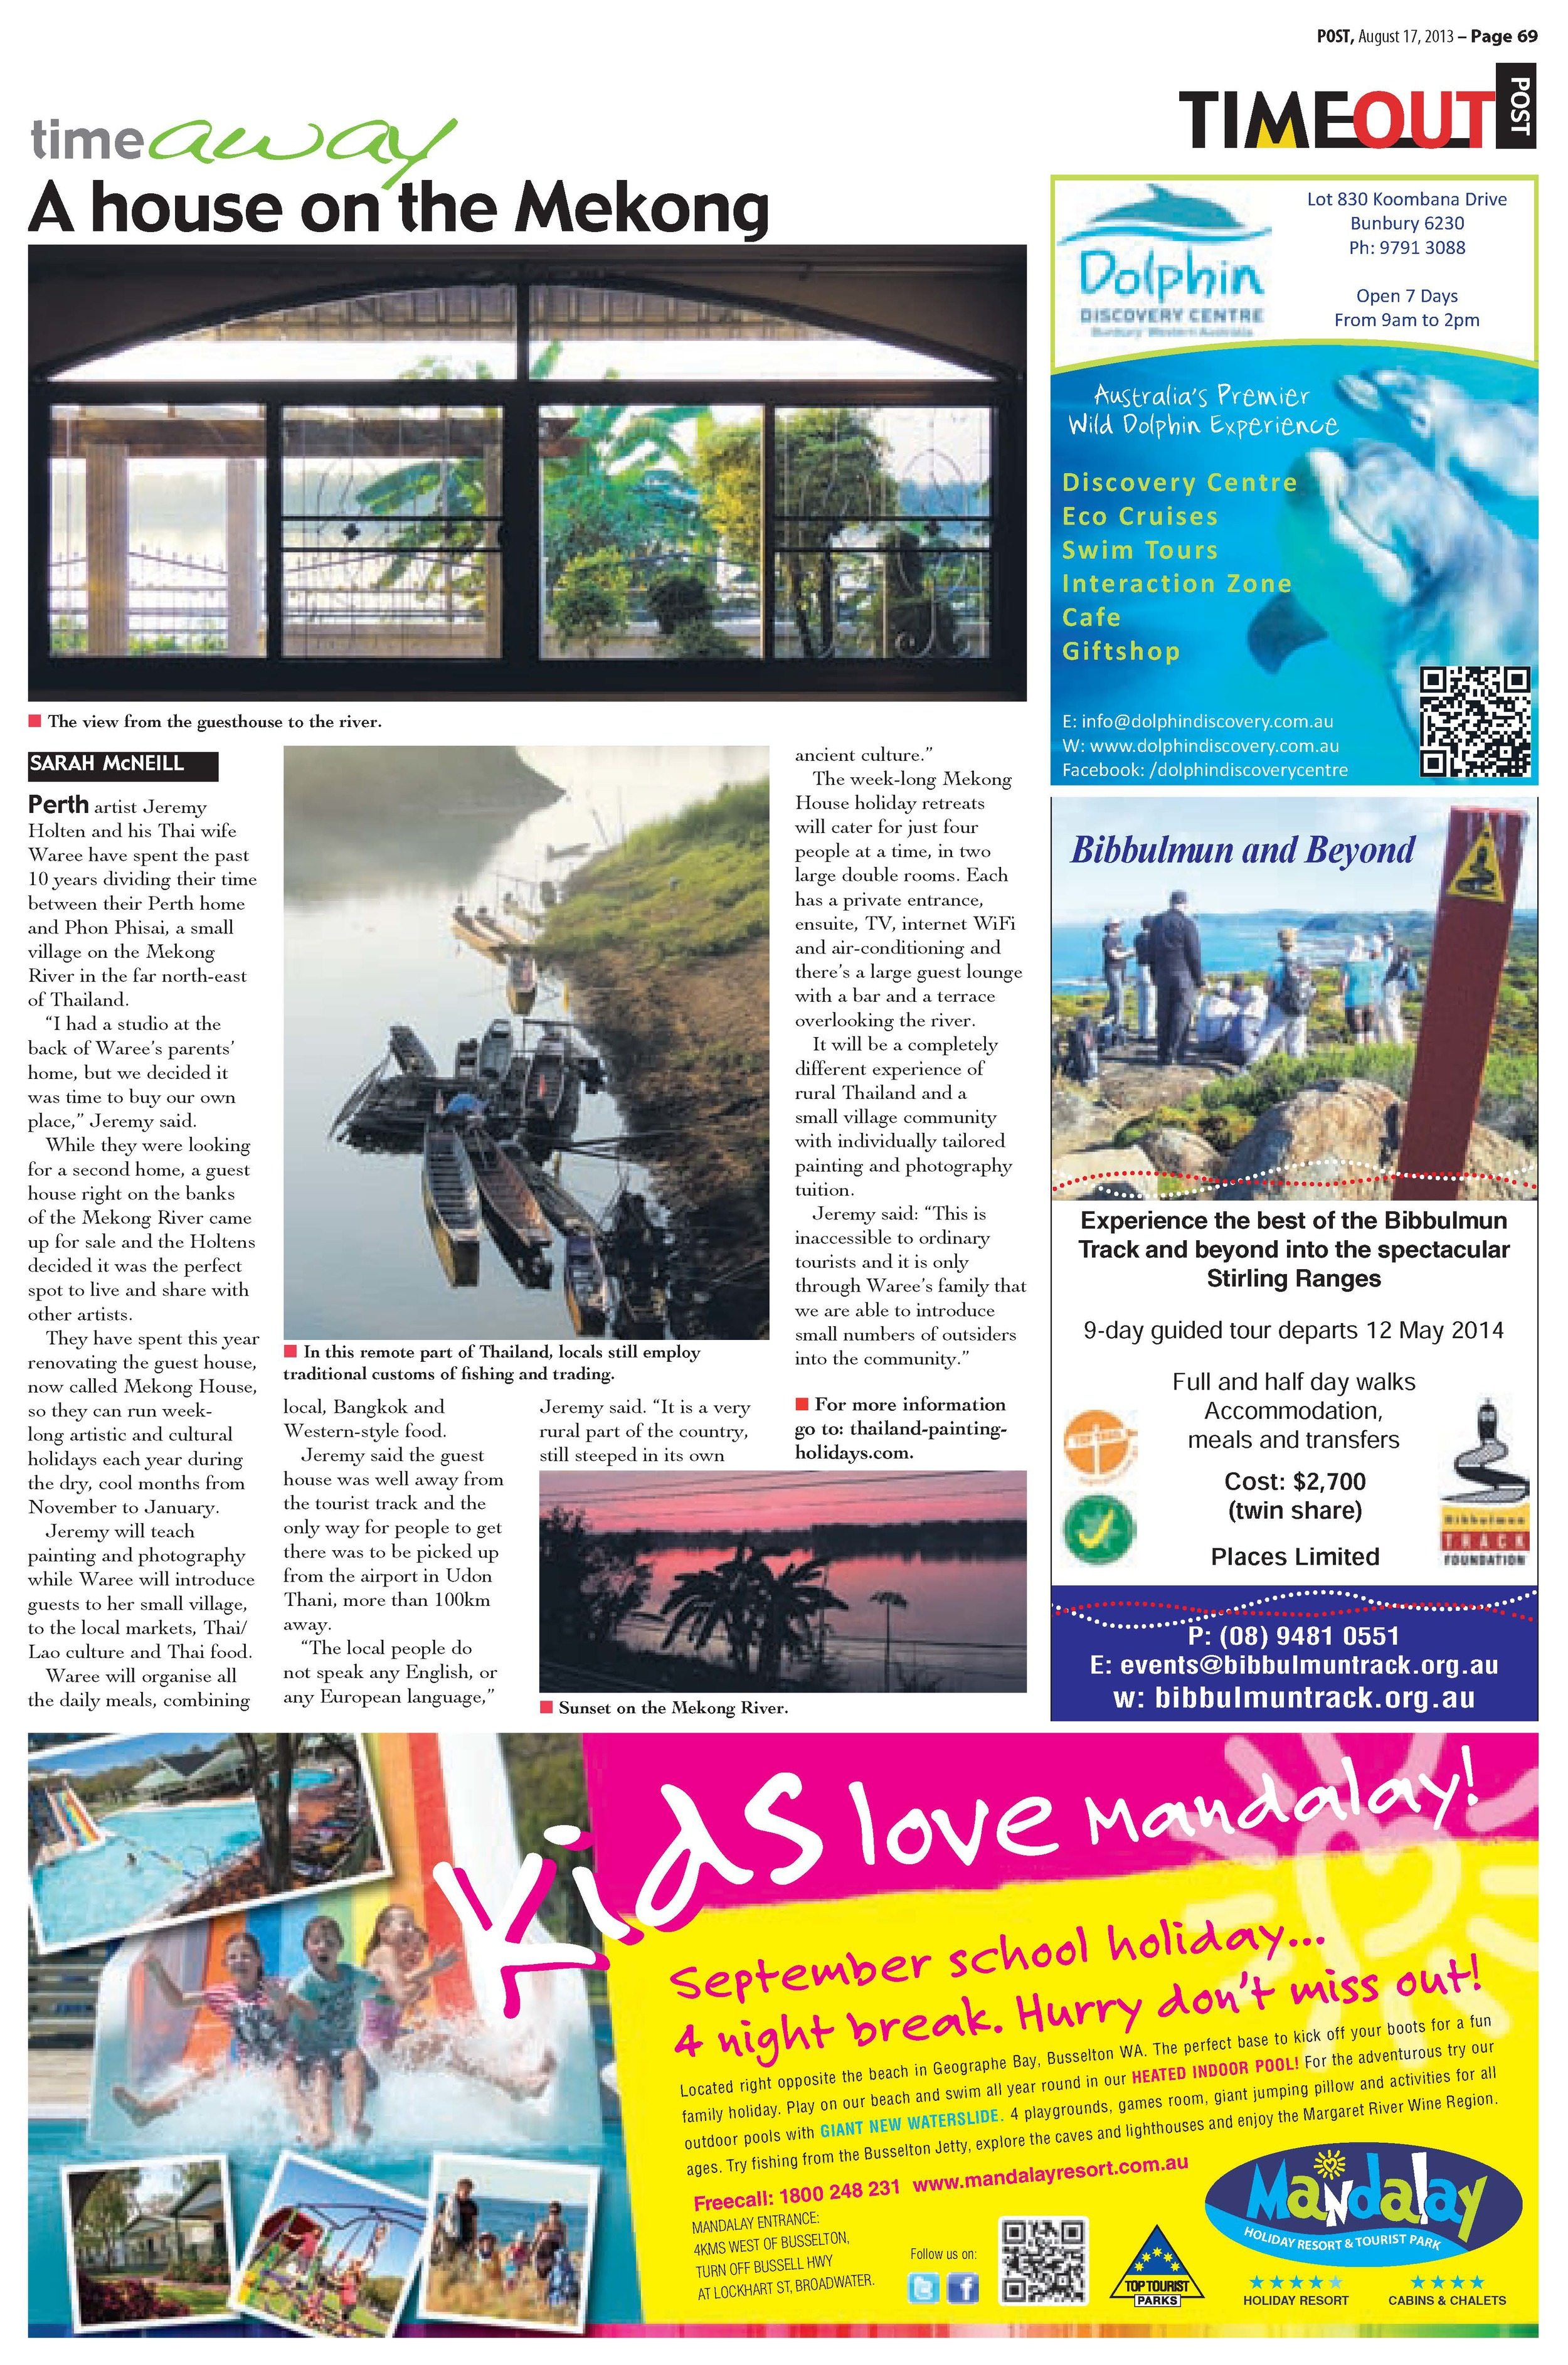 A review of Thailand Painting Holiday in the Timeout Magazine